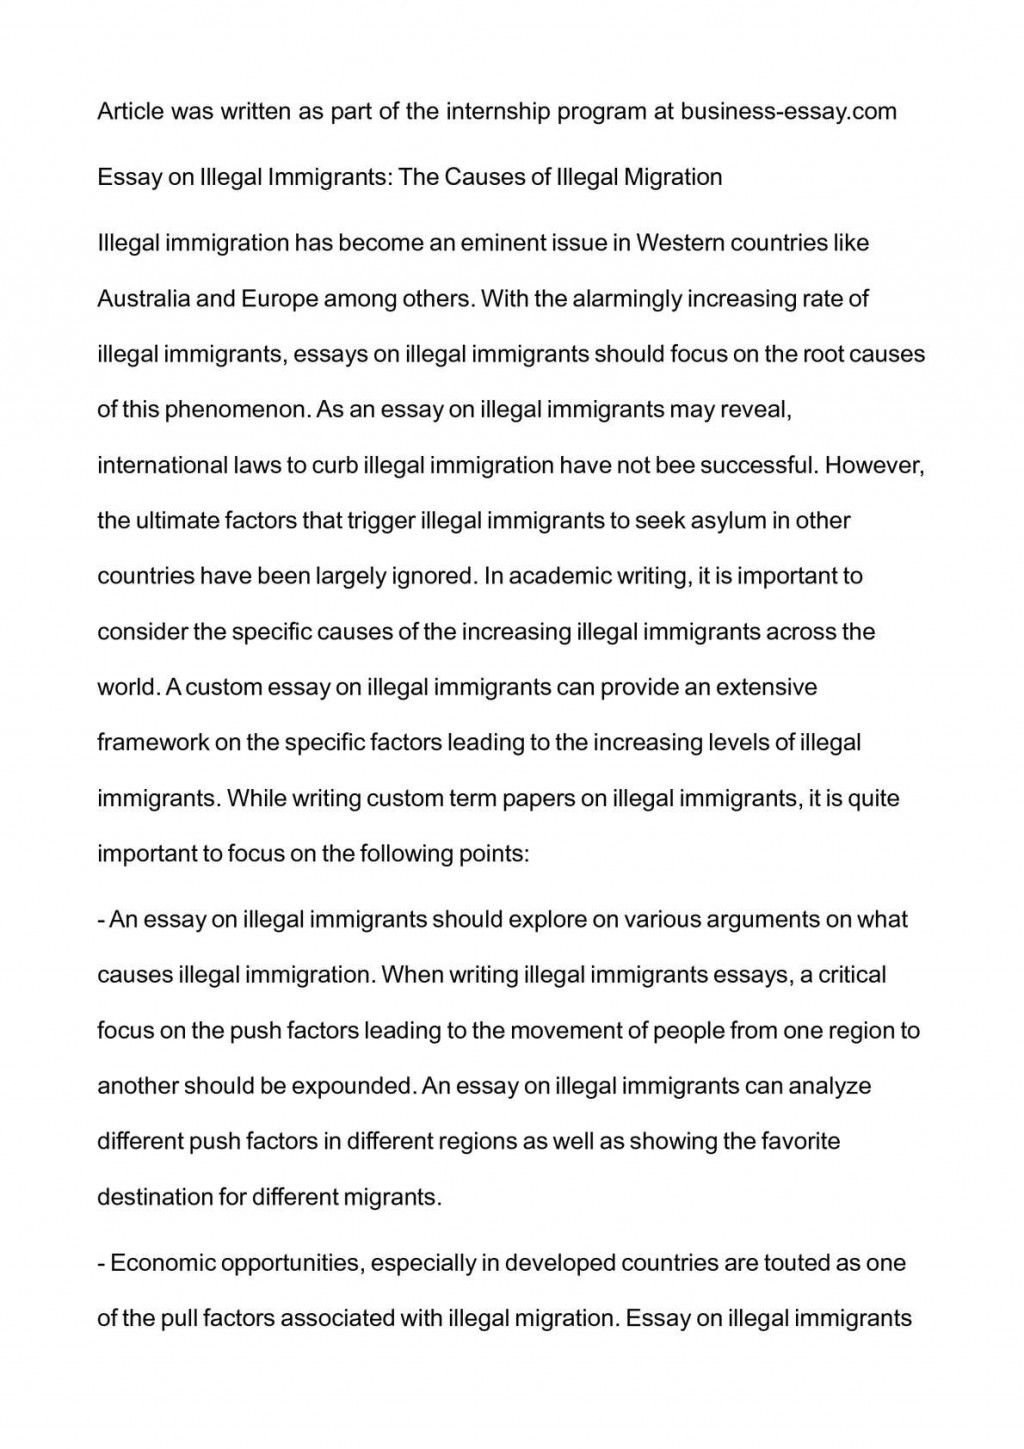 001 Essay About Immigration Argumentative On Illegal P Against Thesis Pro Outline Topics Marvelous In Canada Causes The United States Large